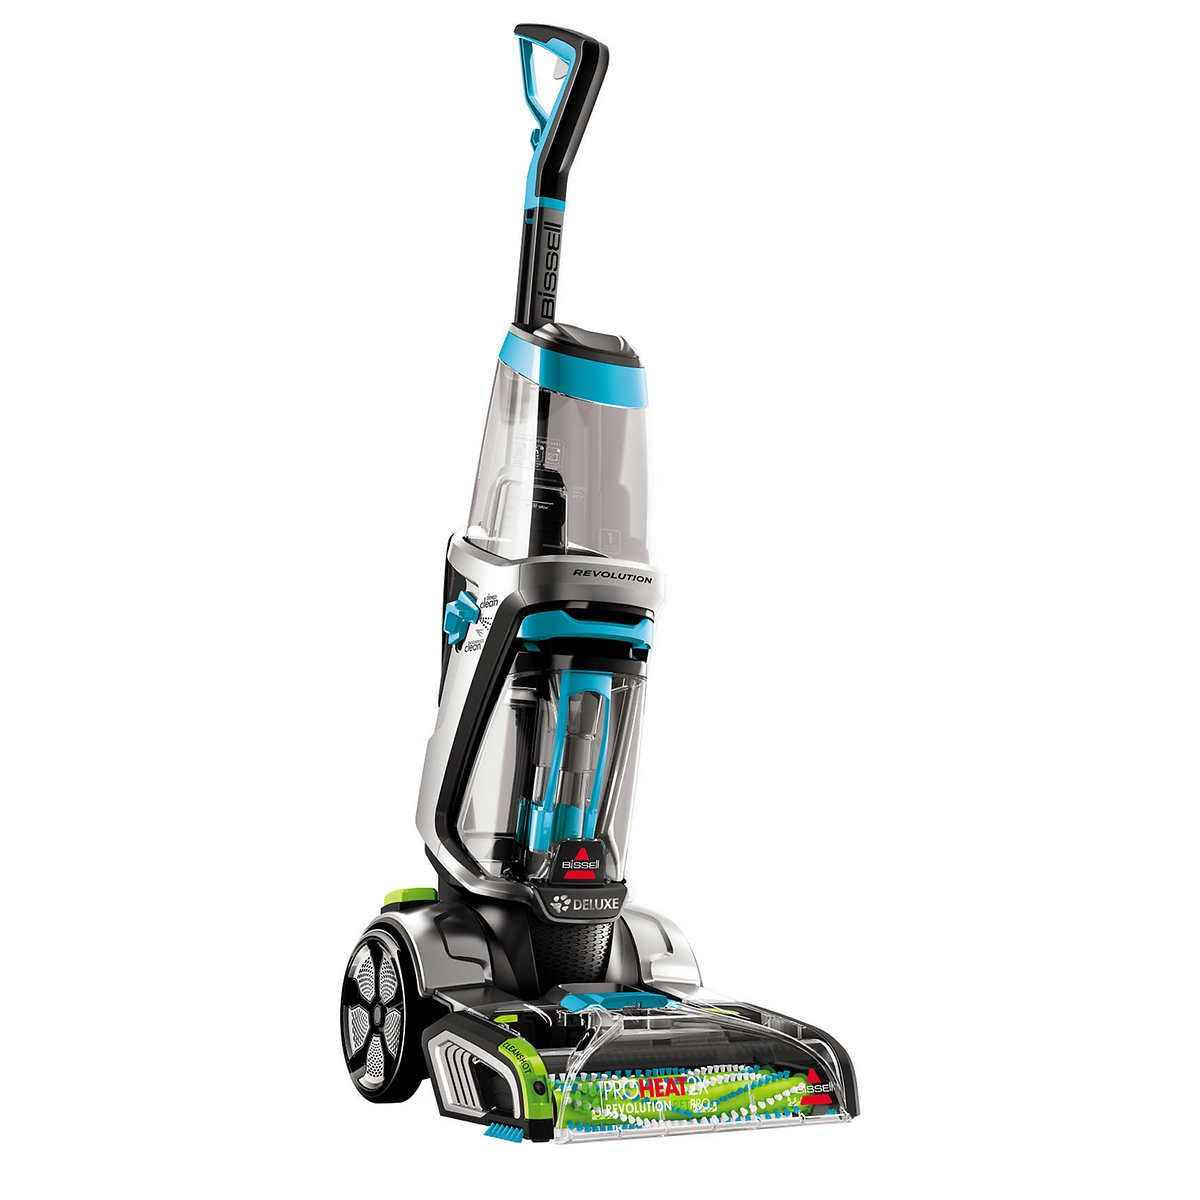 Bissell proheat 2x revolution pet pro carpet cleaner how